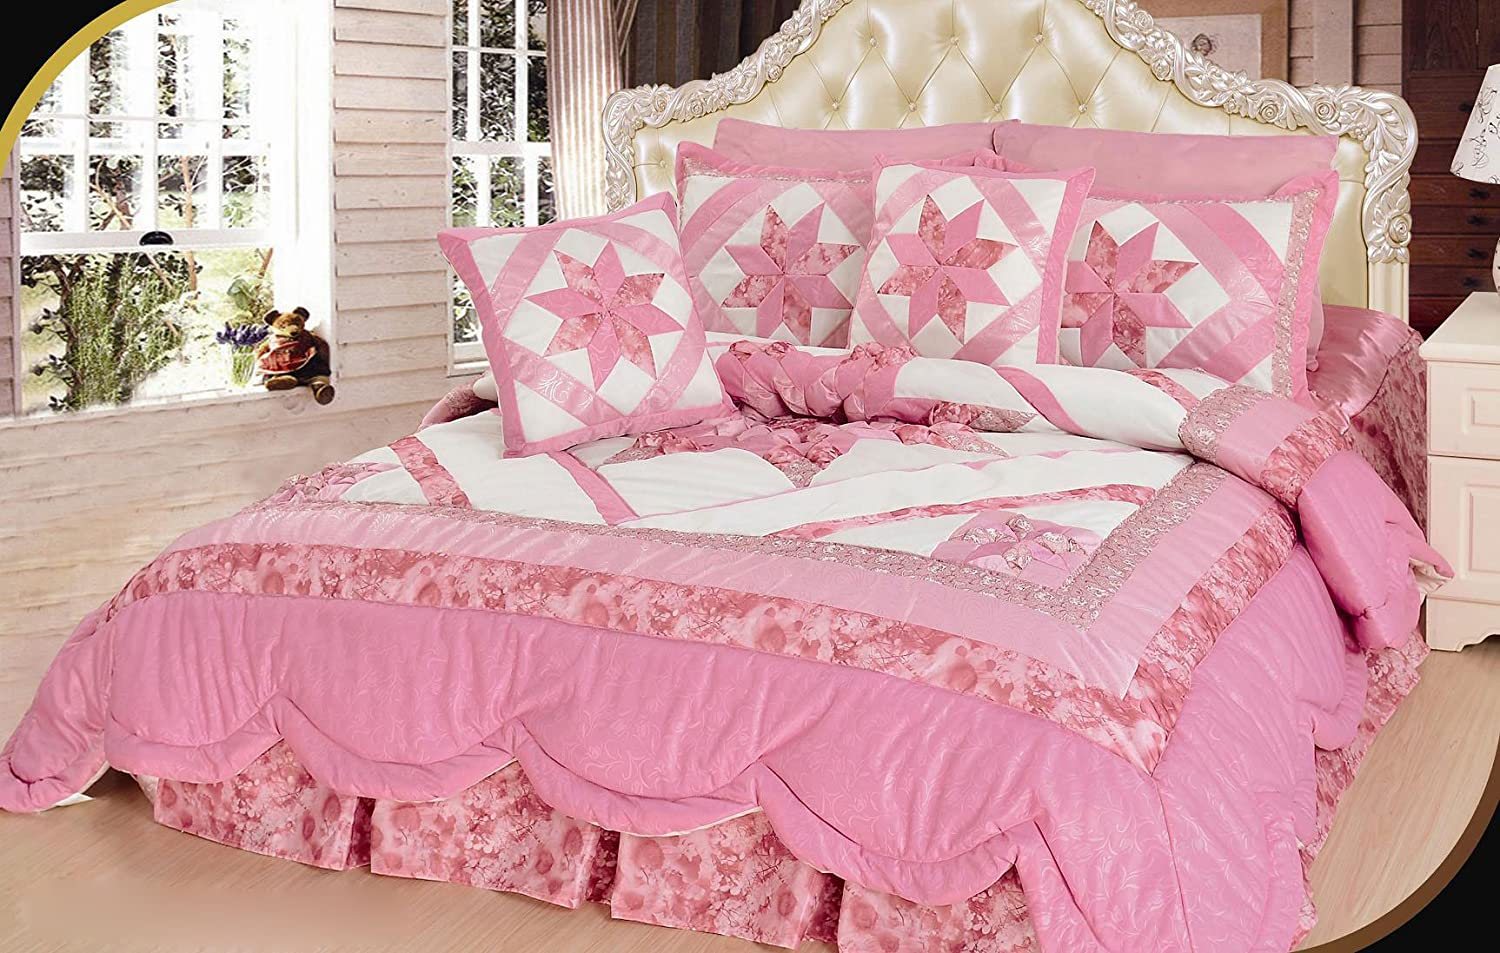 Bed sheets designs for girls - Amazon Com Dada Bedding Bm928l 1 5 Piece Patchwork New Girly Girl Comforter Set King Size Pink Home Kitchen